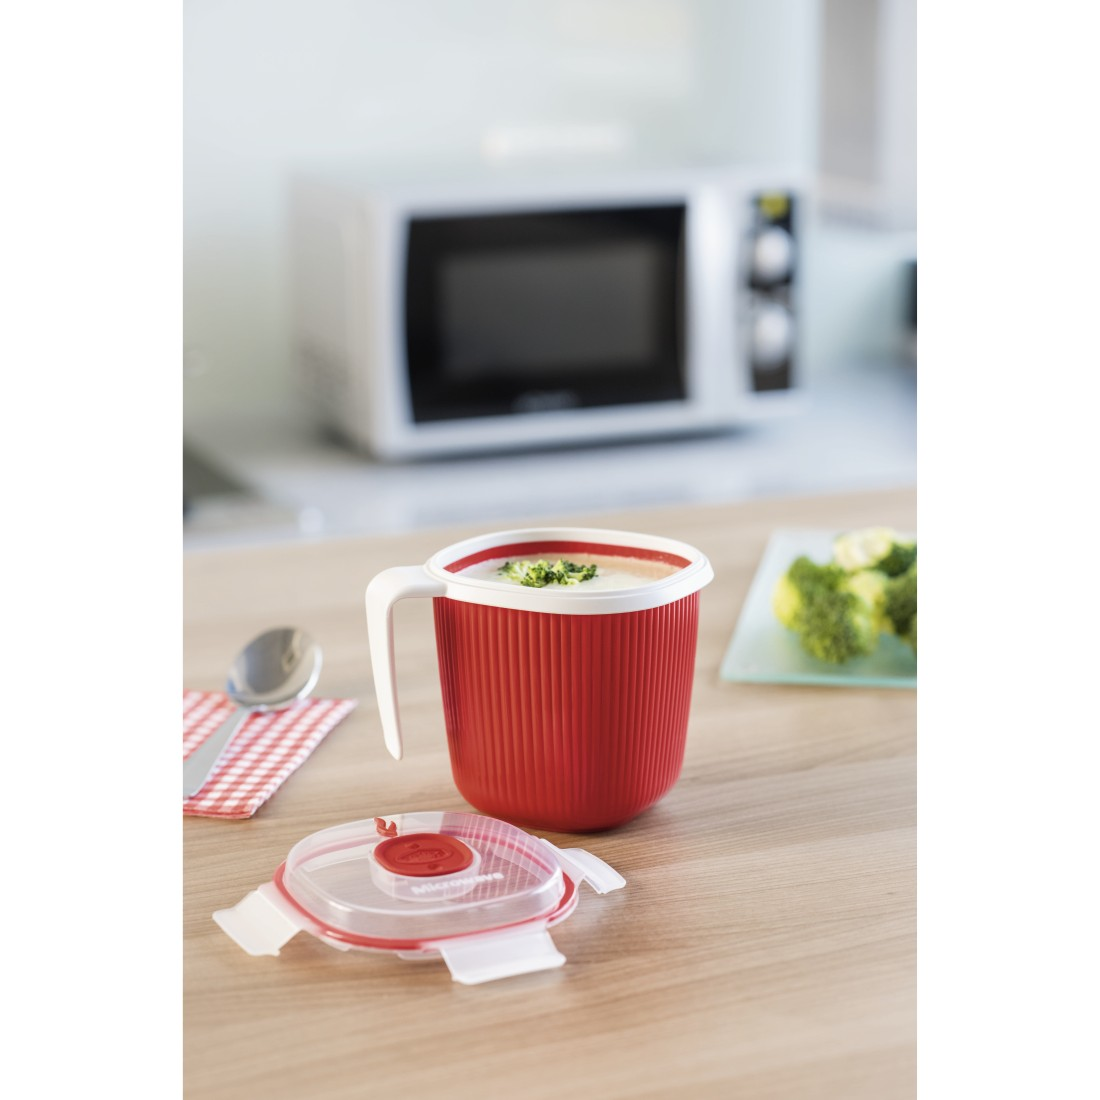 awx High-Res Appliance - Xavax, Tasse pour four à micro-ondes, 0,7 l, rouge